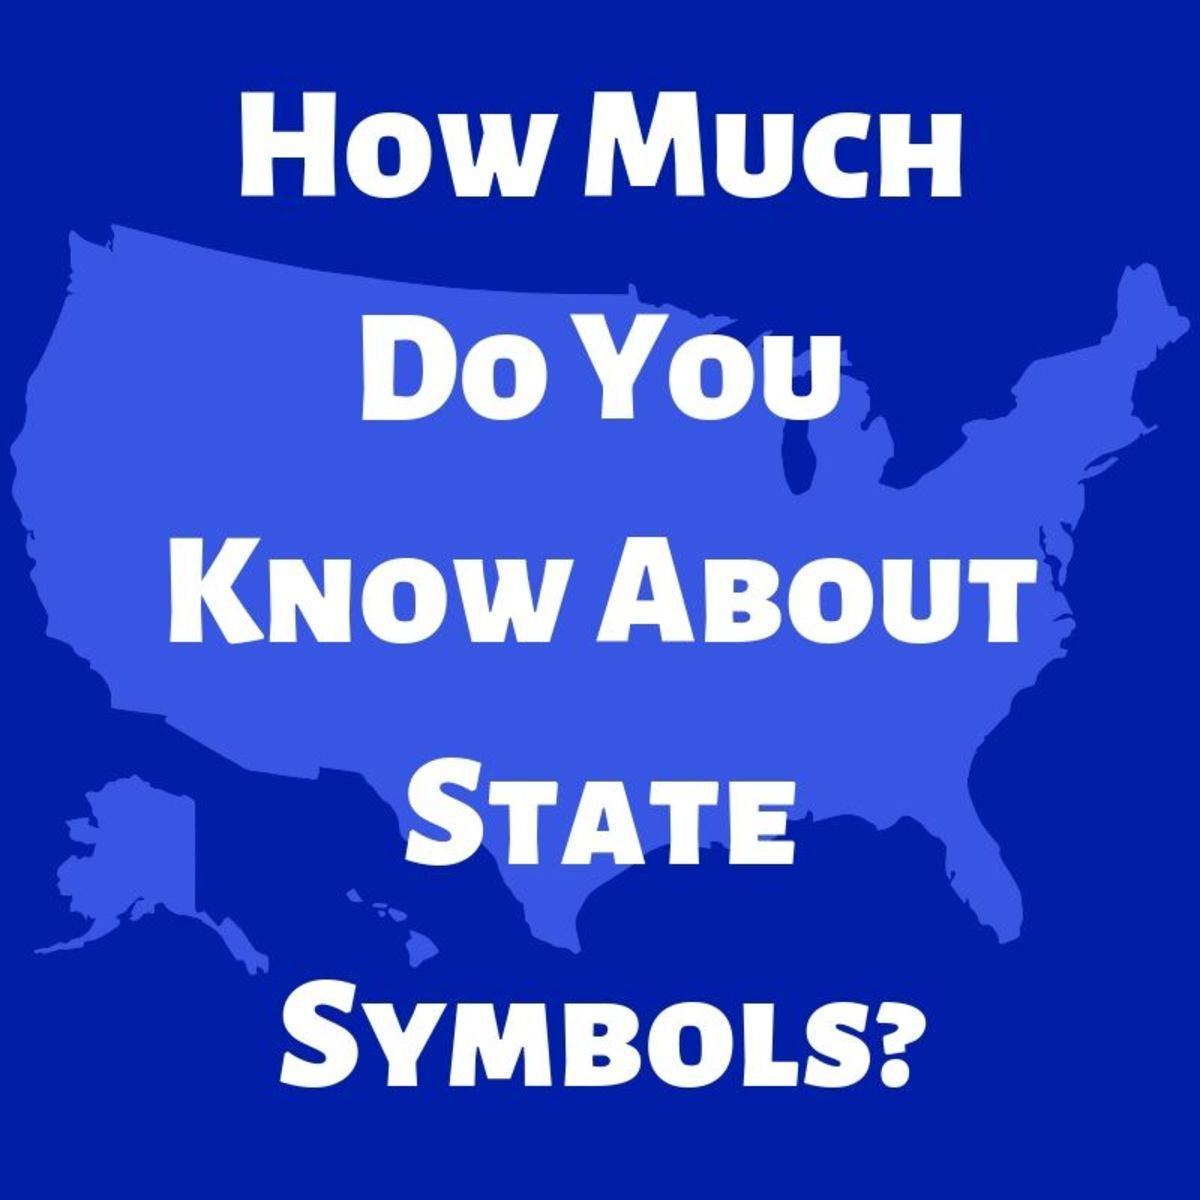 How Much Do You Know About Official State Symbols? (Quiz)